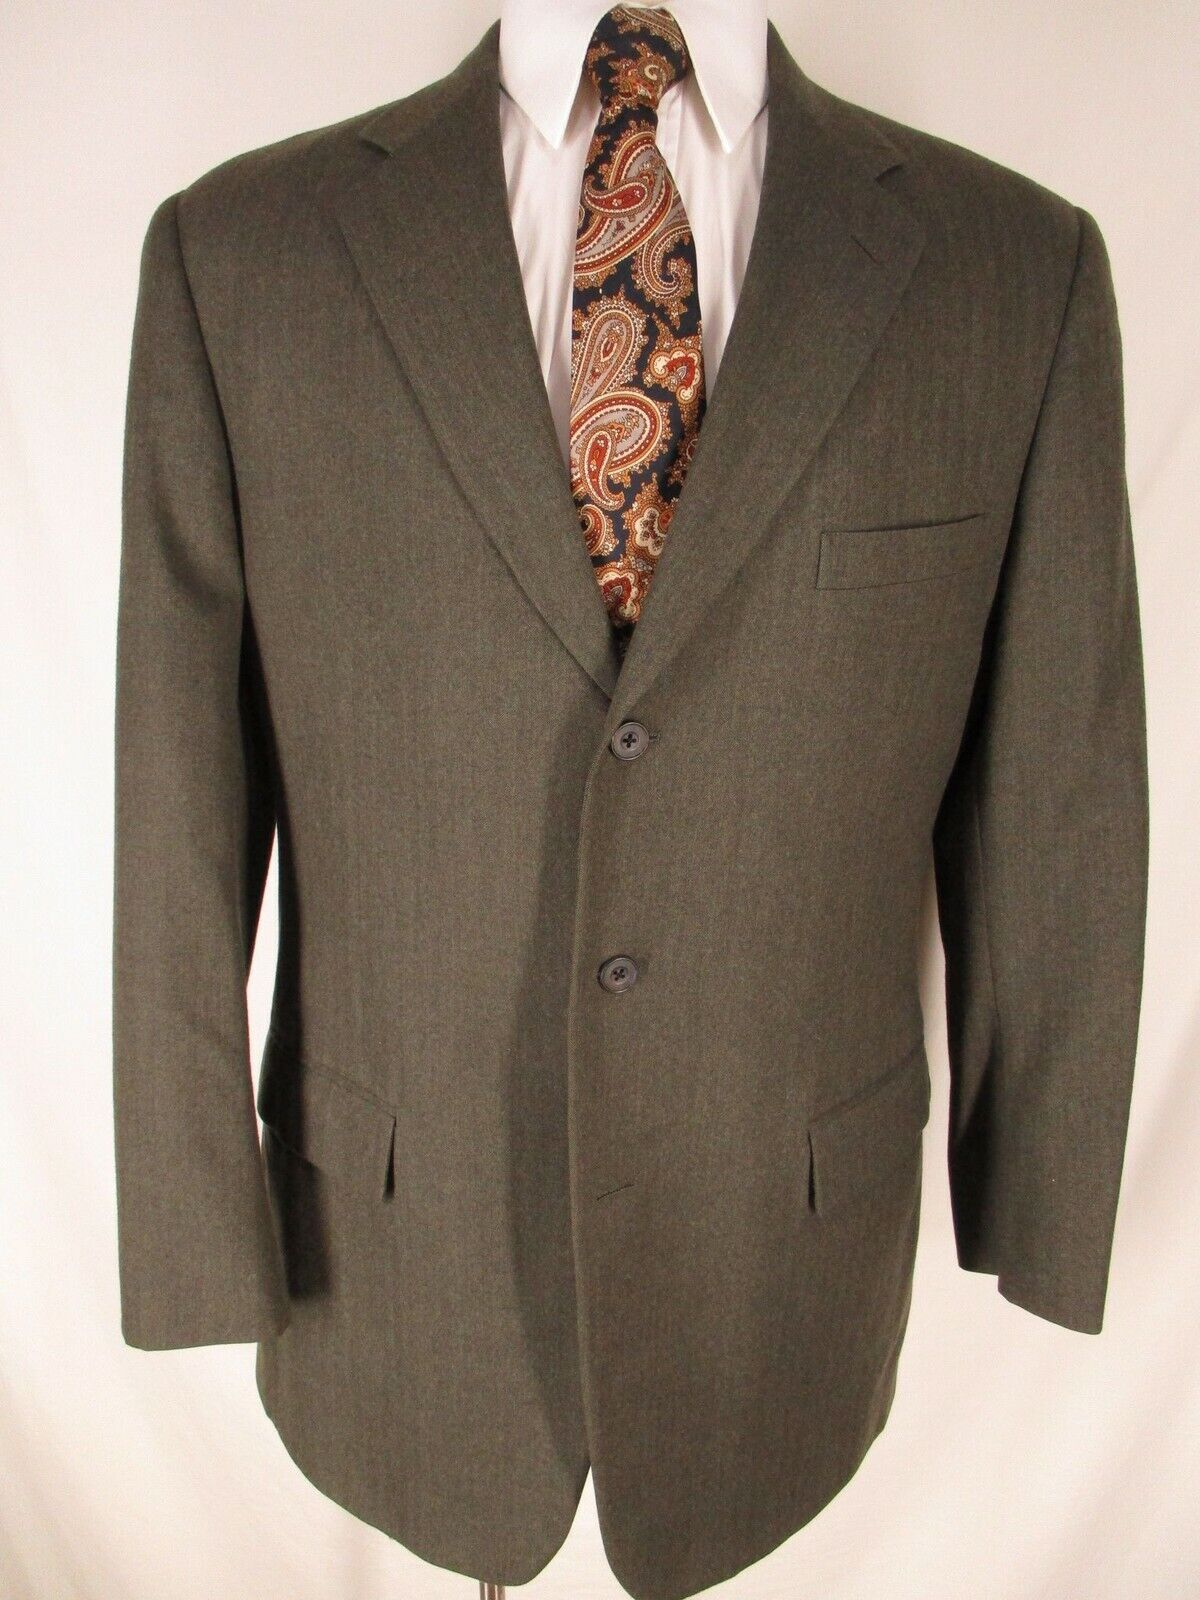 Paul Stuart Westgate Mens Olive Herringbone 3 Btn Sport Coat 43L USA Made